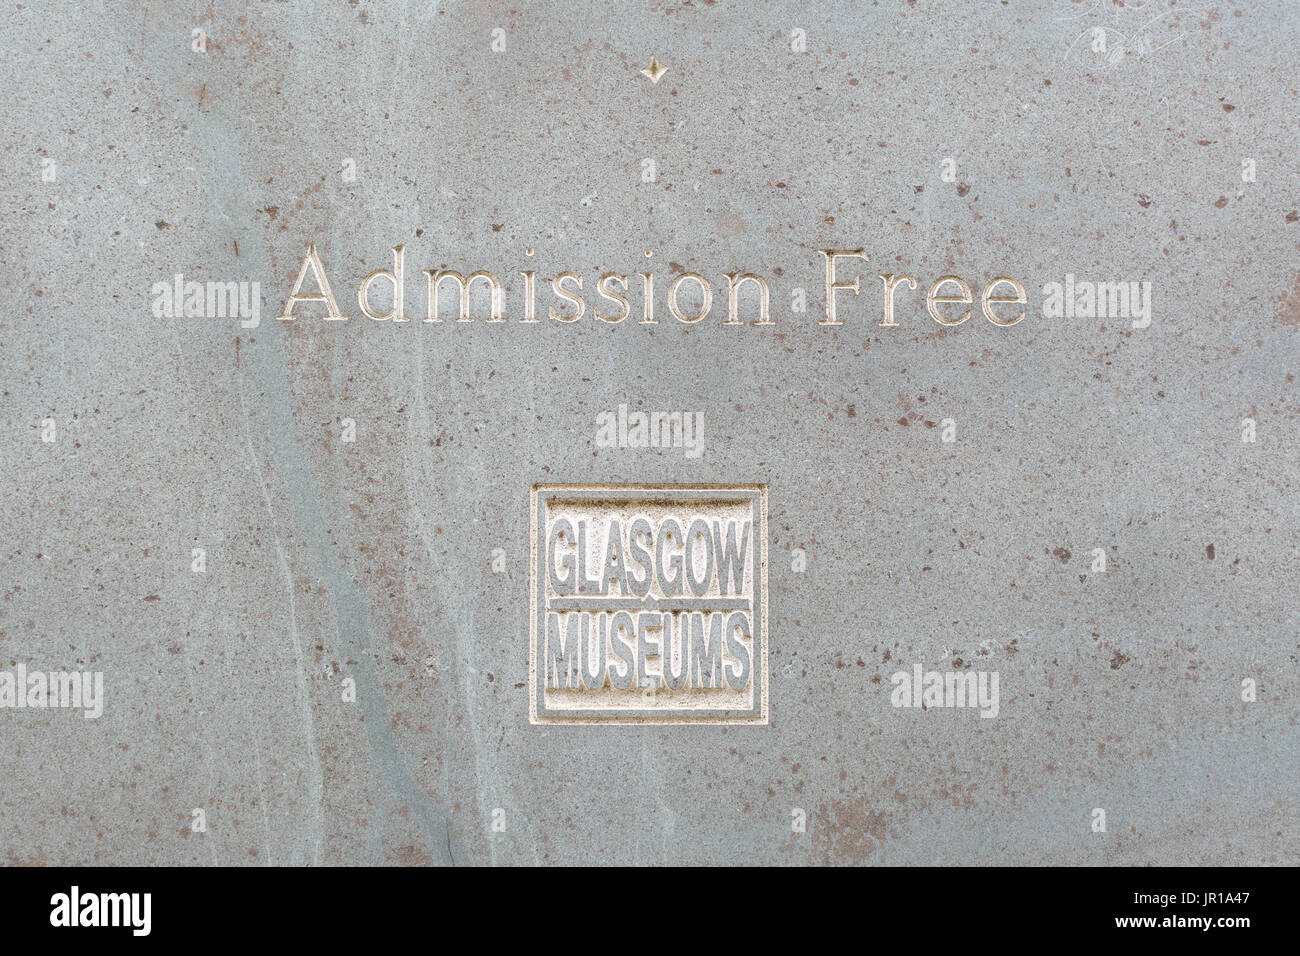 Admission Free Glasgow Museums sign - Stock Image